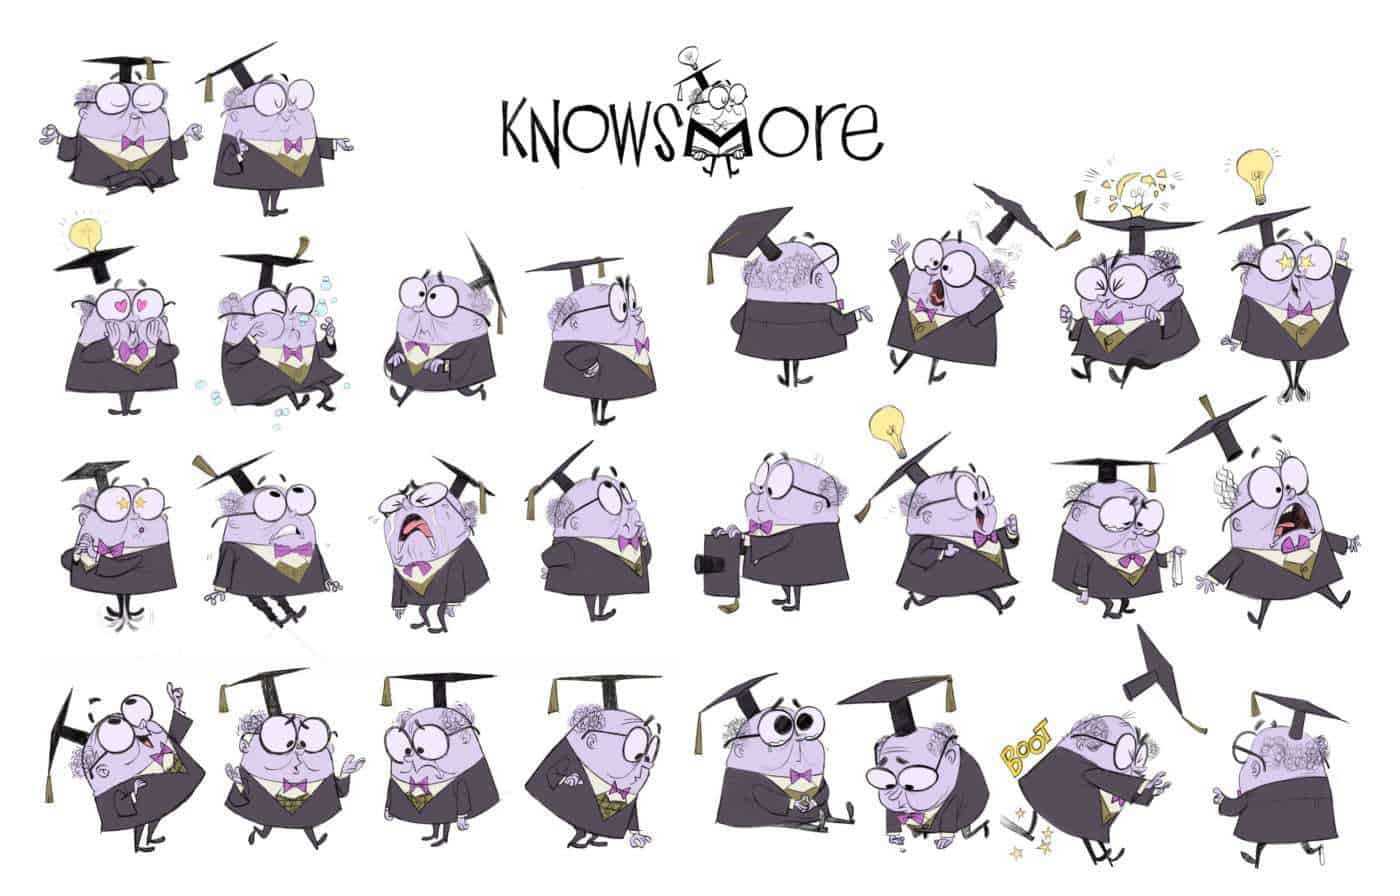 RALPH BREAKS THE INTERNET - KnowsMore character visual development model sheet by Cory Loftis (Production Designer)